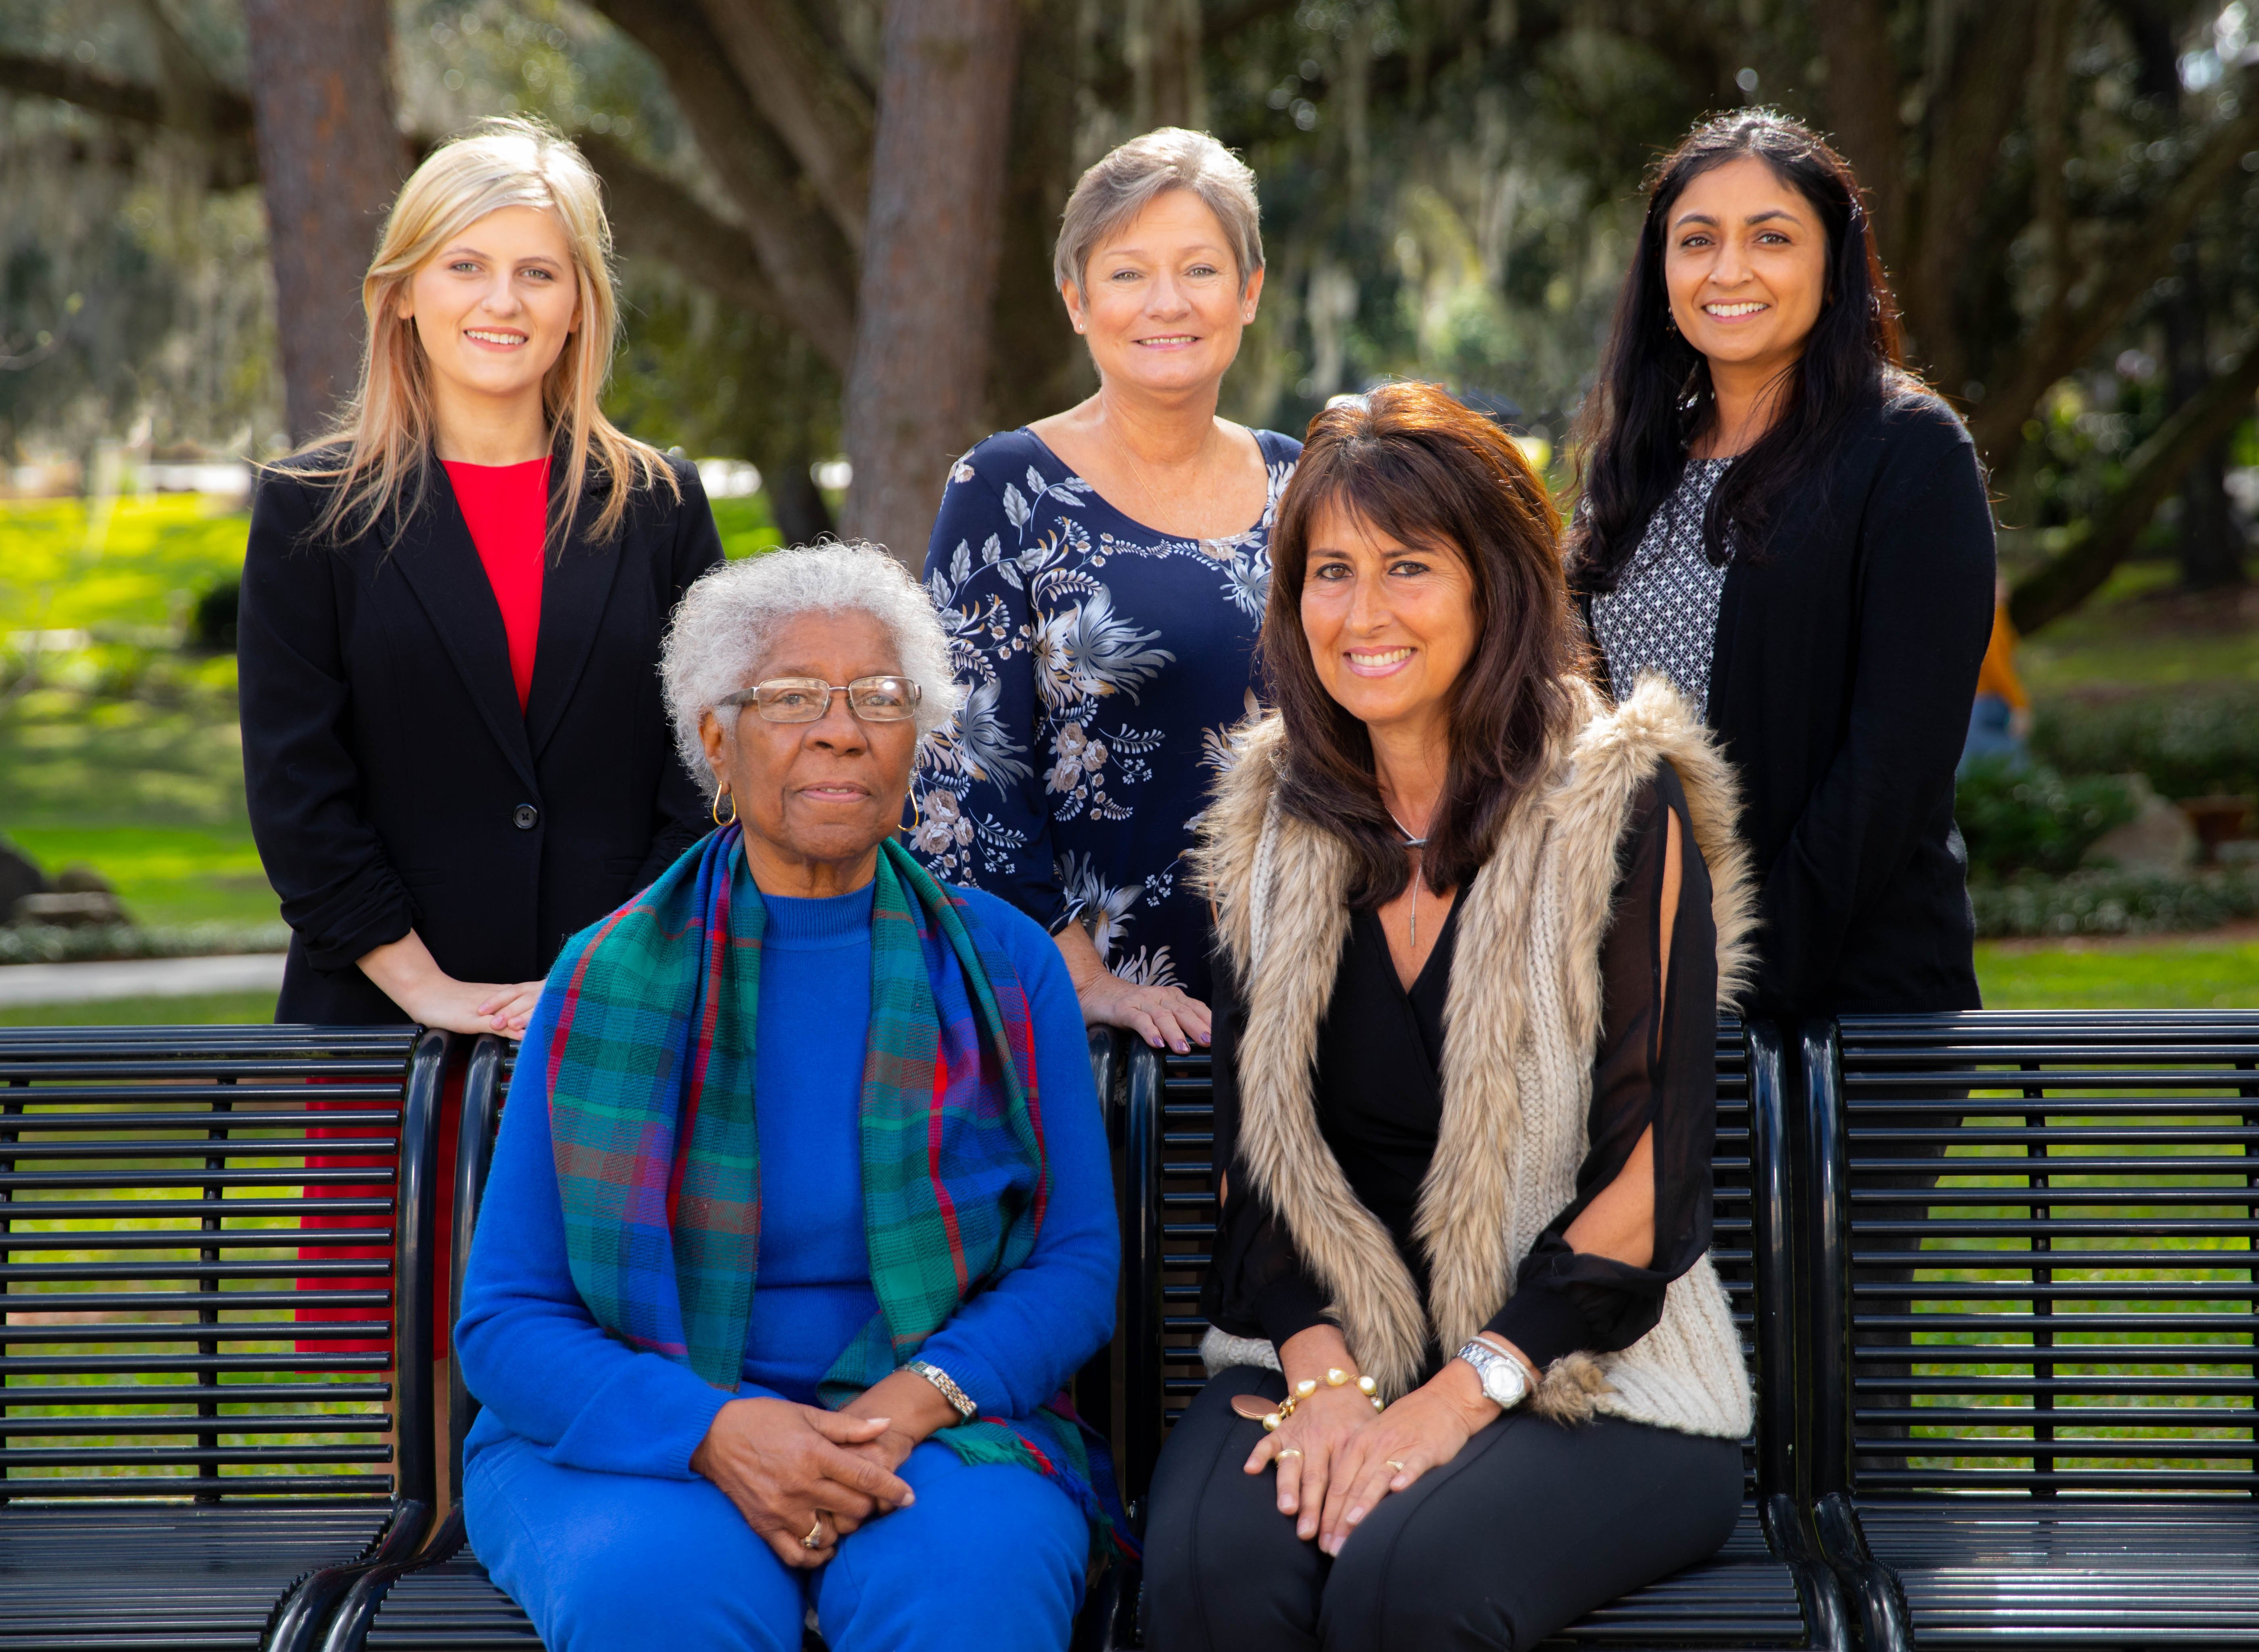 The 2019 honorees are (seated) Gussie Mae Washington-Lee and Fran Maris, (standing) Emily Acevedo, Linda Lee and Nilanjana Caballero. Not pictured, Carol Bosshardt